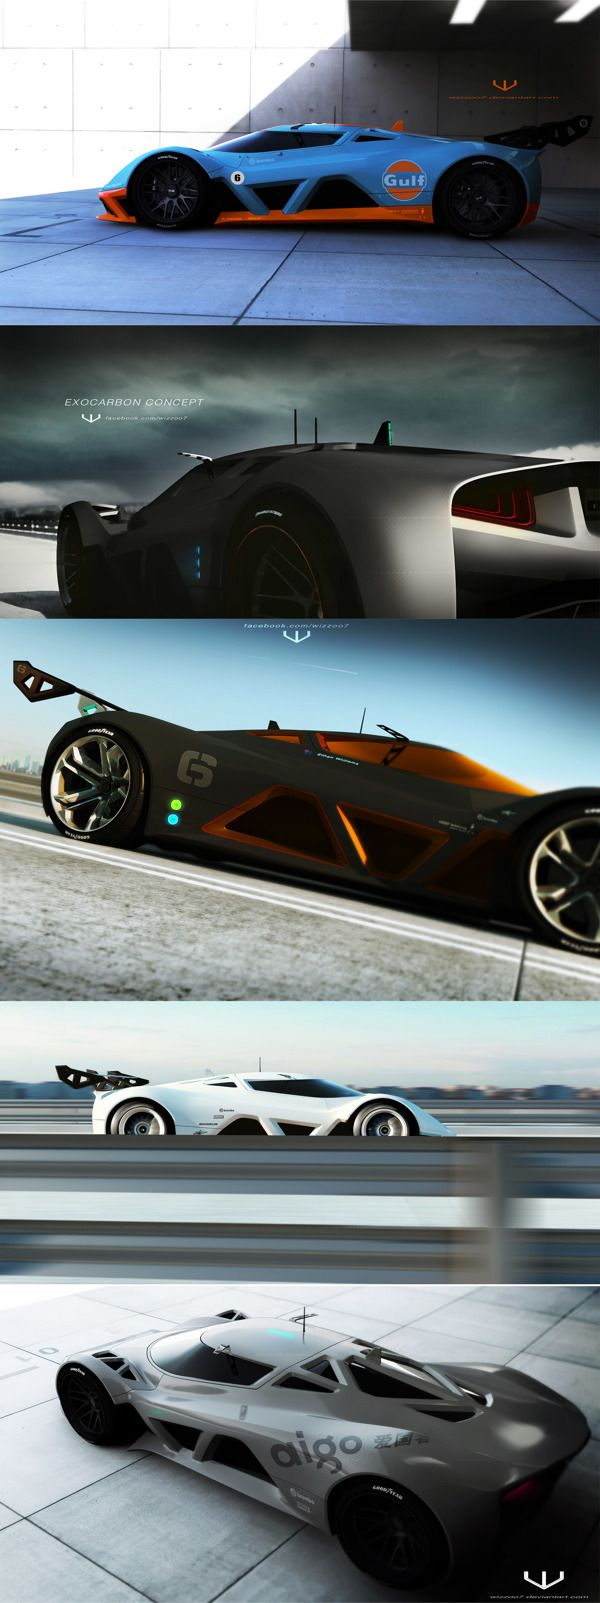 Exocarbon project by wizzoo7   Cars   Pinterest   Cars, Transportation and Vehicle